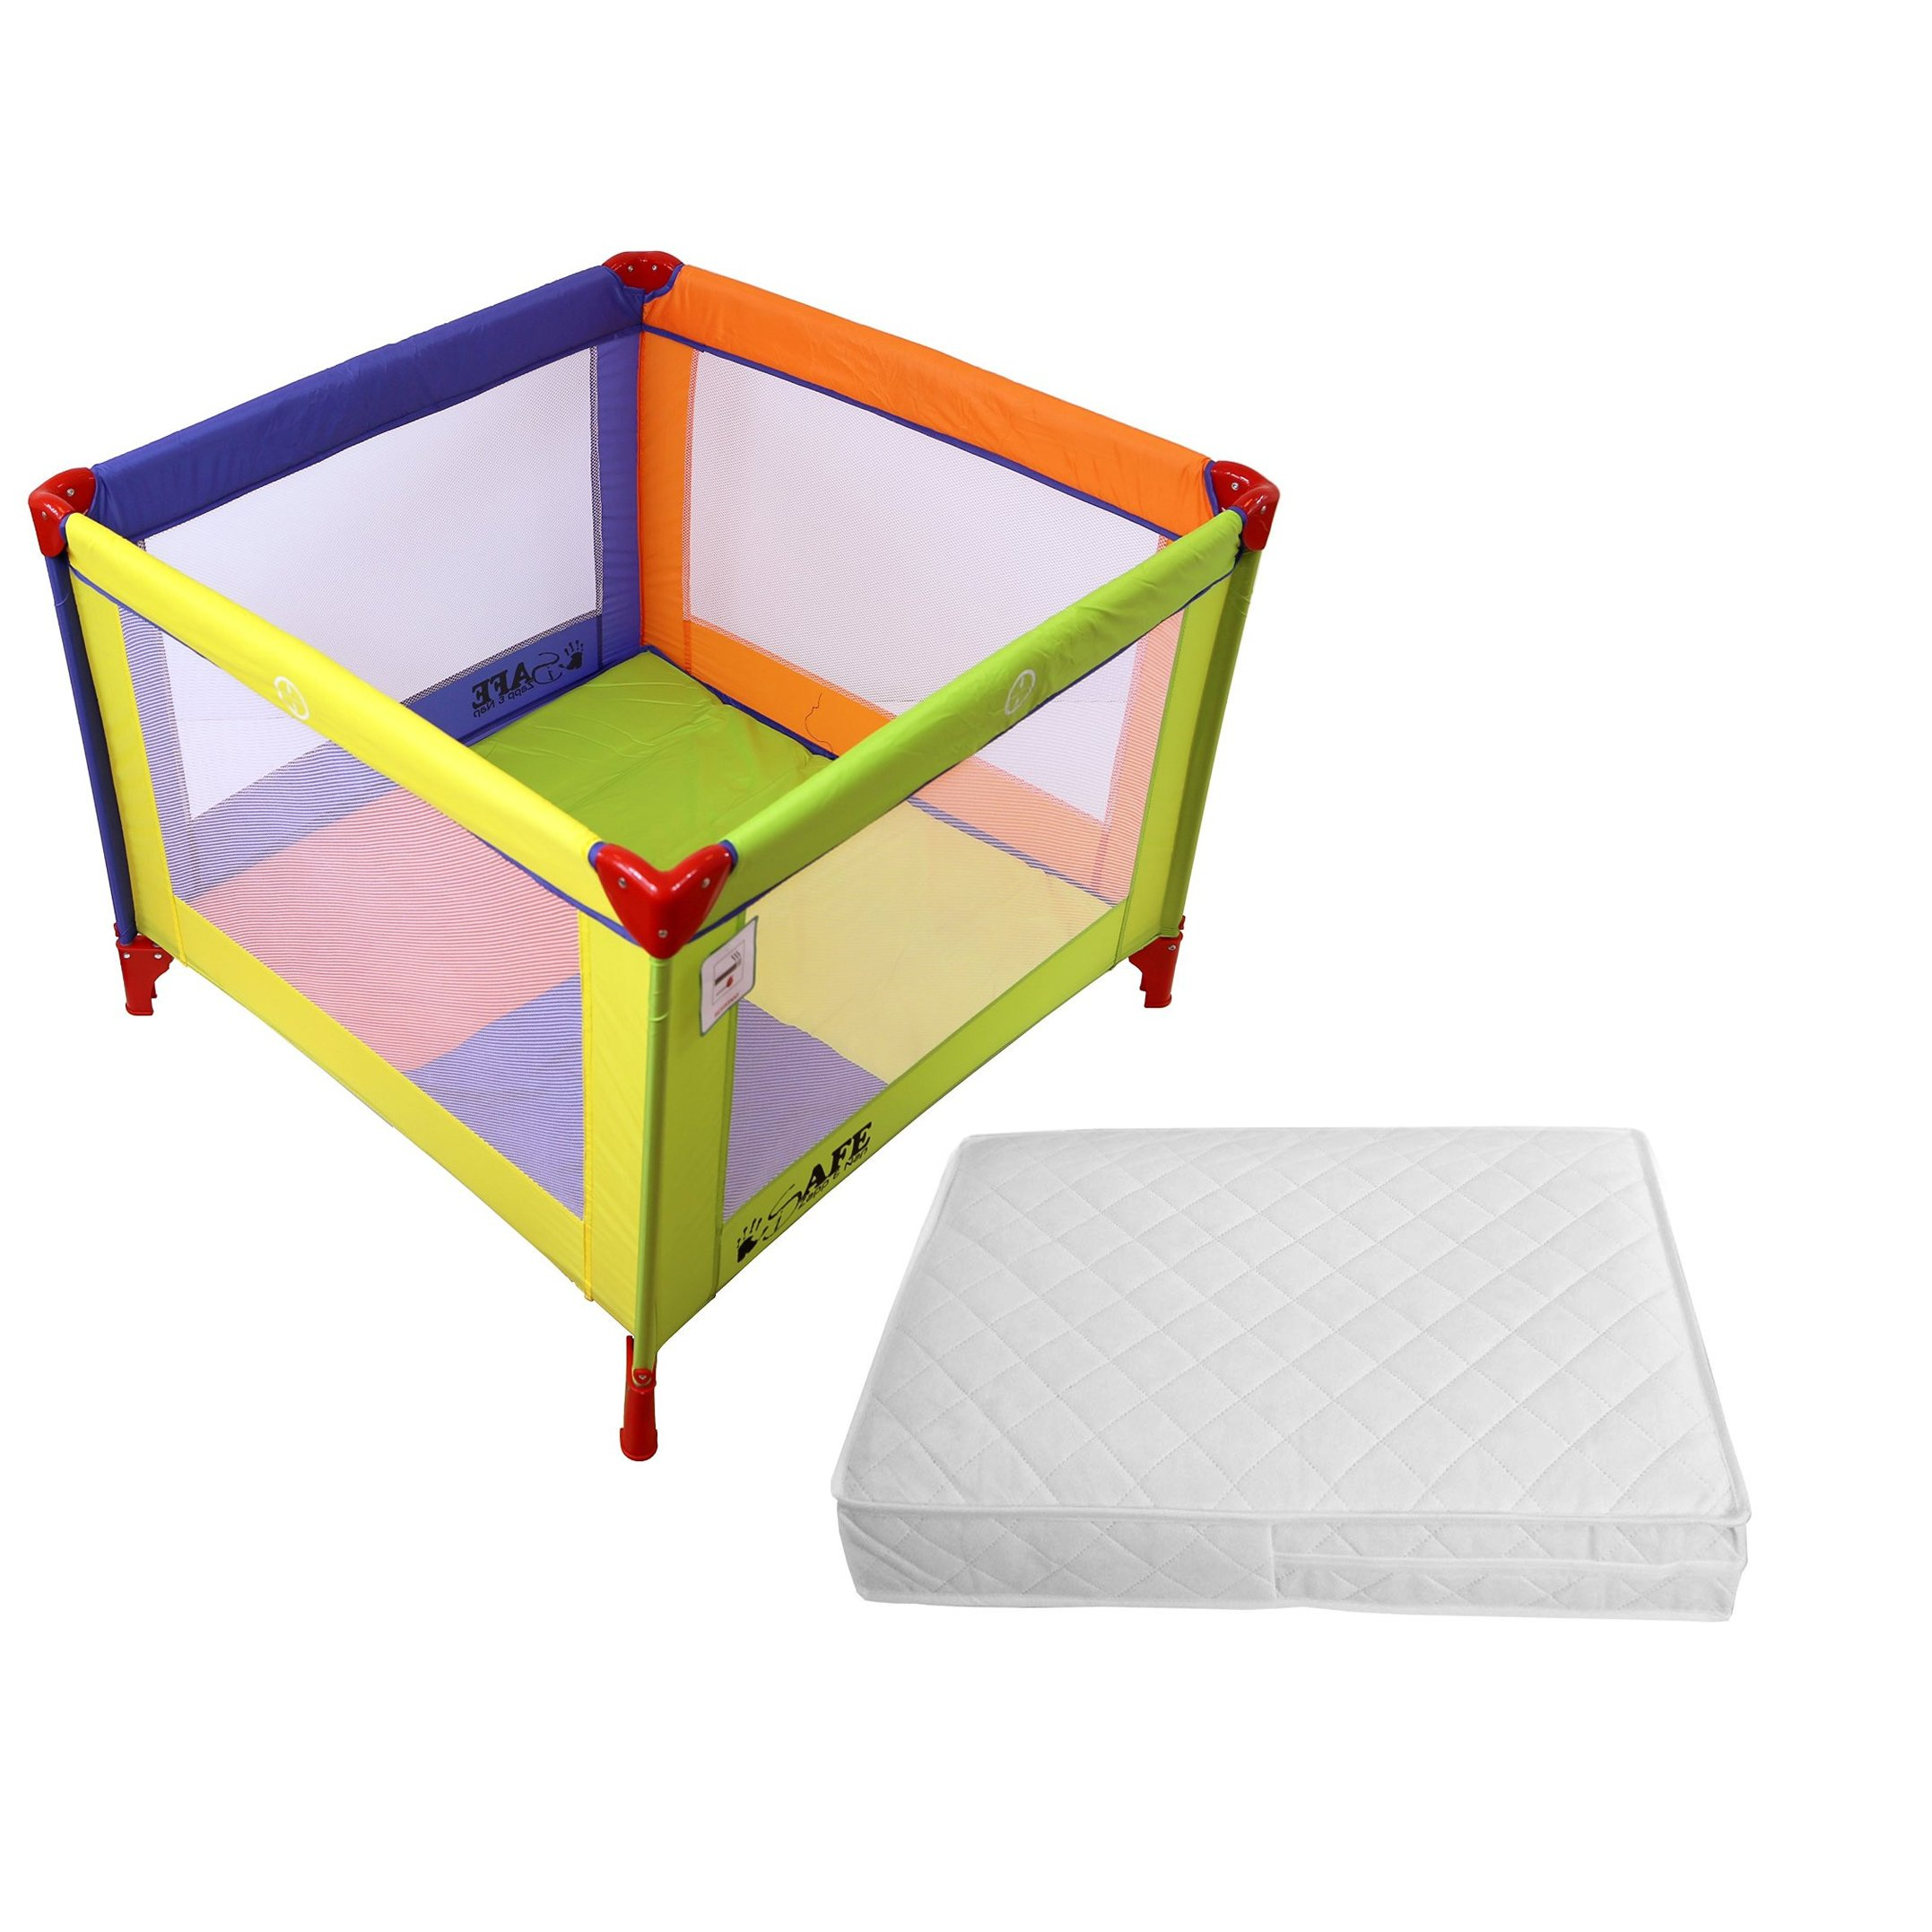 pretty nice 2a91c 1aaab iSafe Zapp And Nap Luxury Square Travel Cot/Playpen - Mixed Color  (Multicolored) 101cm x 101cm Complete With Mattress